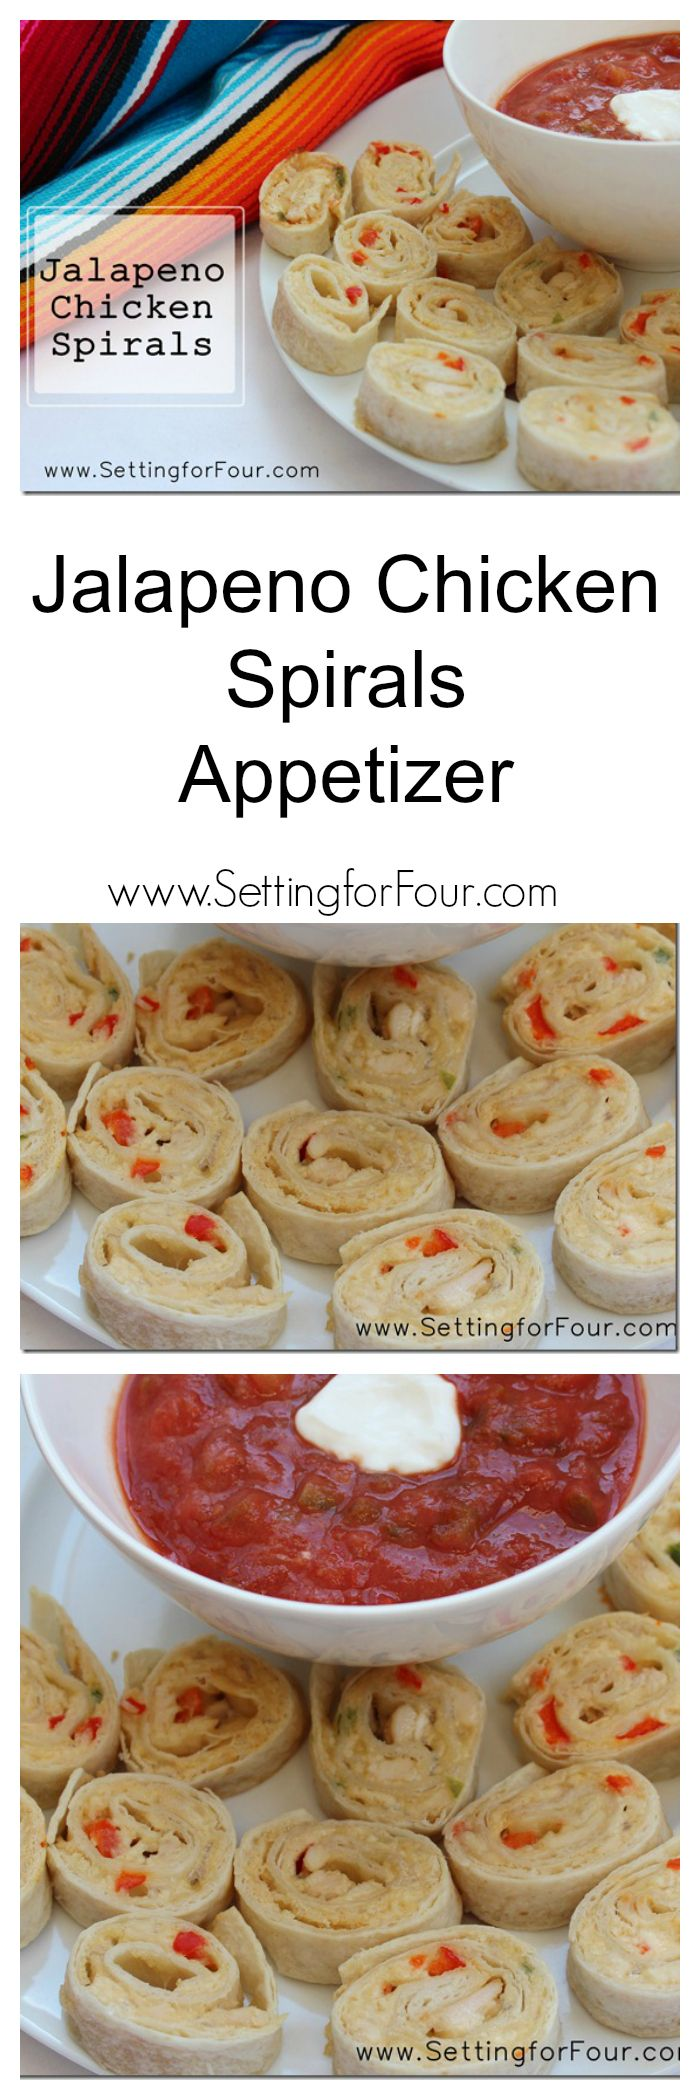 Jalapeno Chicken Spirals – a yummy appetizer recipe perfect for game night, Super Bowl parties, Cinqo de Mayo parties or anytime!